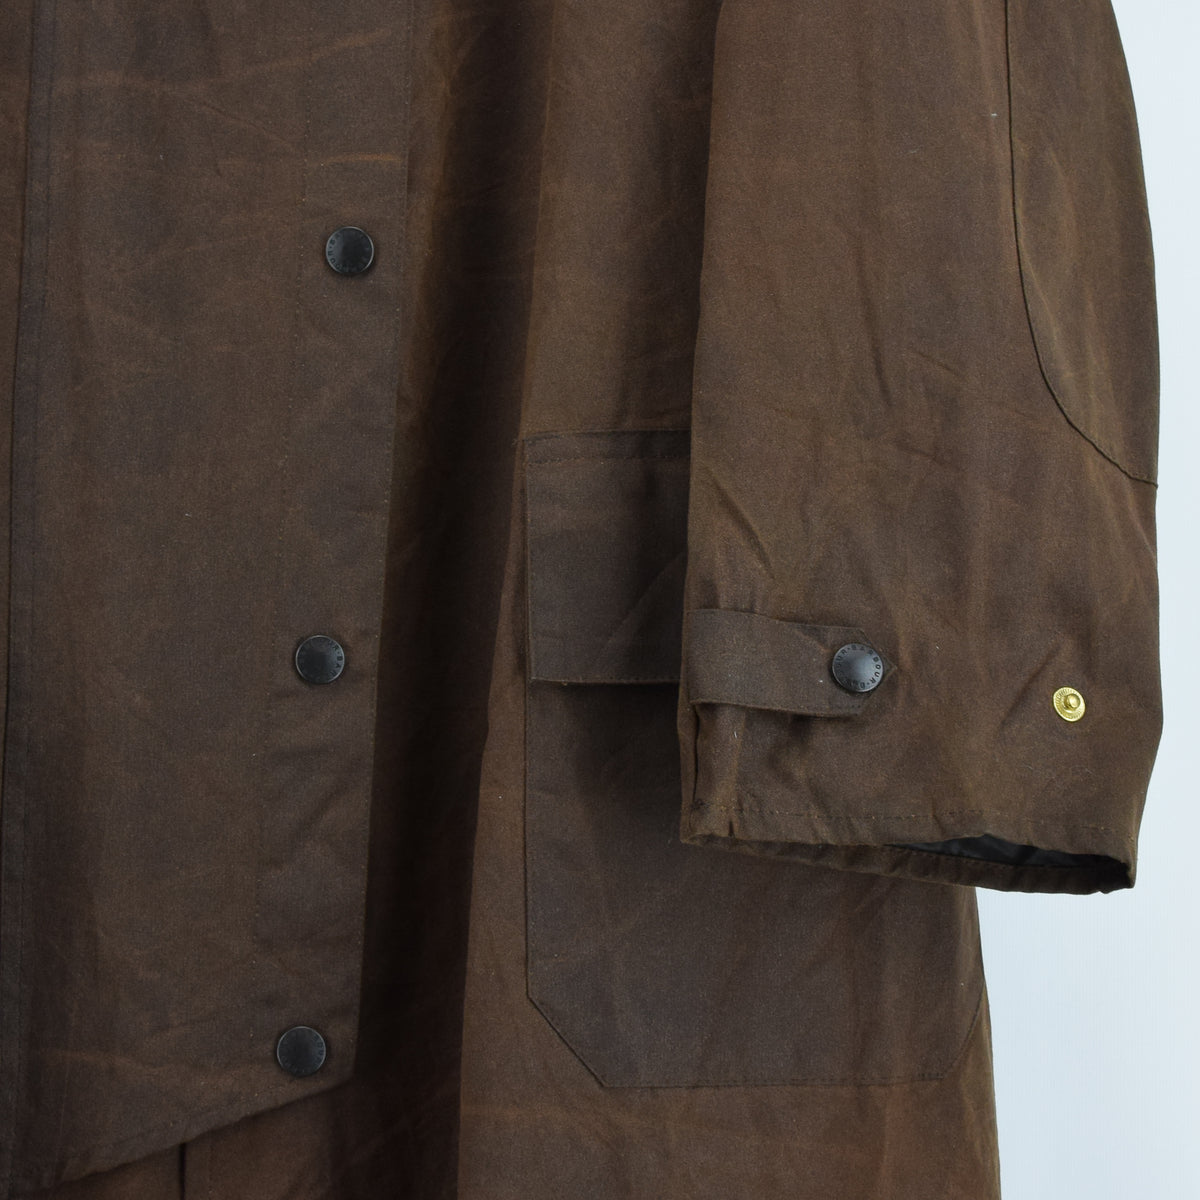 Vintage Backhouse Brown A1250 Stockman's Coat Wax Cotton Riding Jacket S front hem